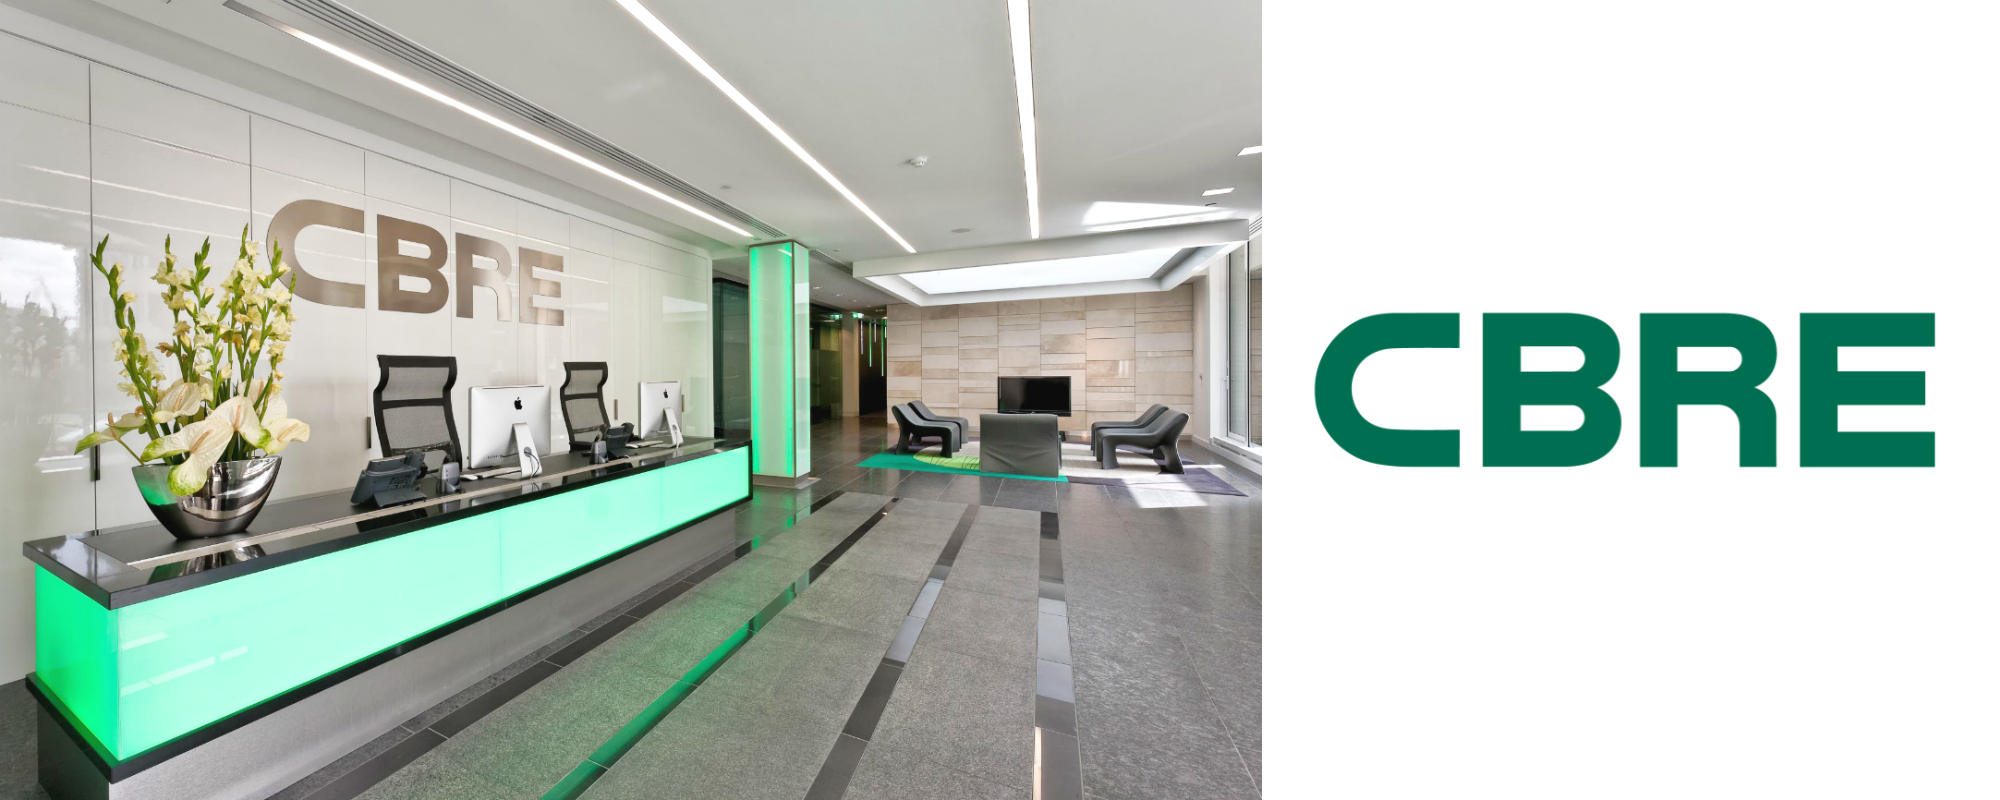 CBRE Banner Most Powerful M&A Firms in the world best upslide